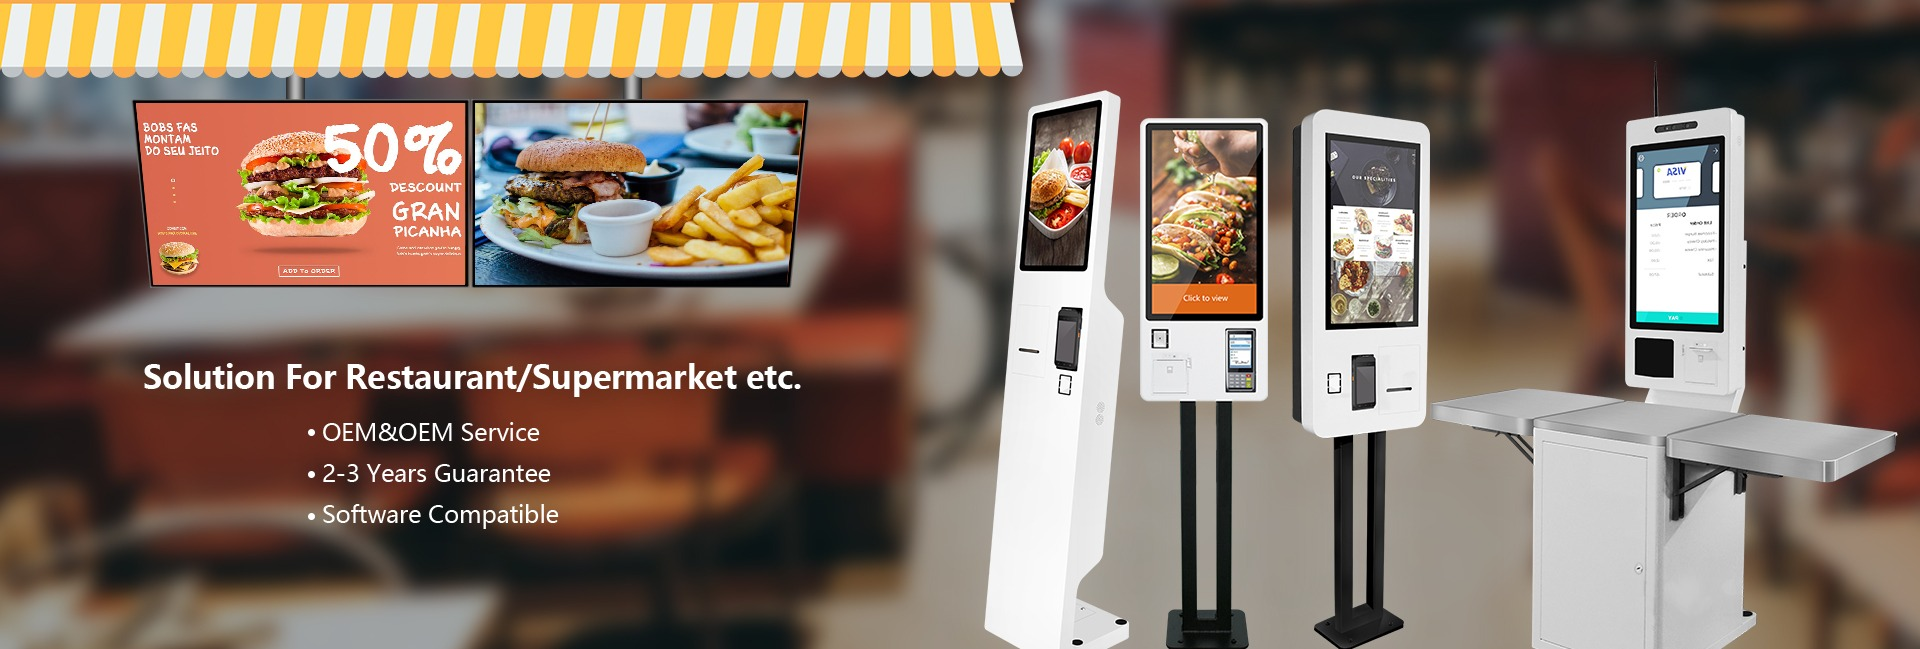 shop till Digital Screens and self order kiosk